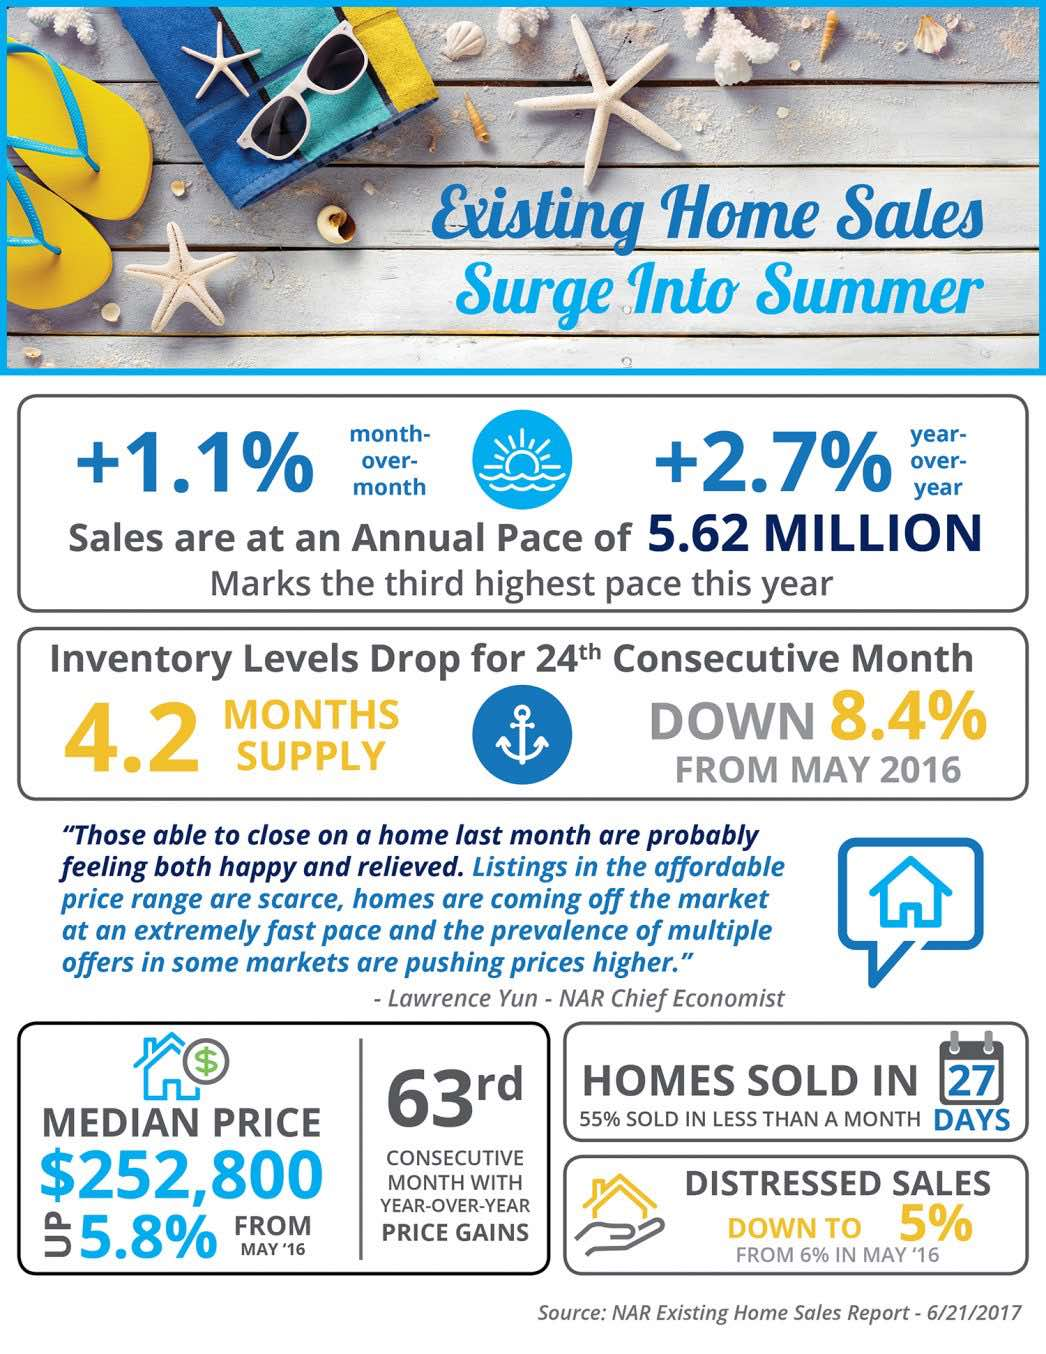 Existing Home Sales Surge into Summer